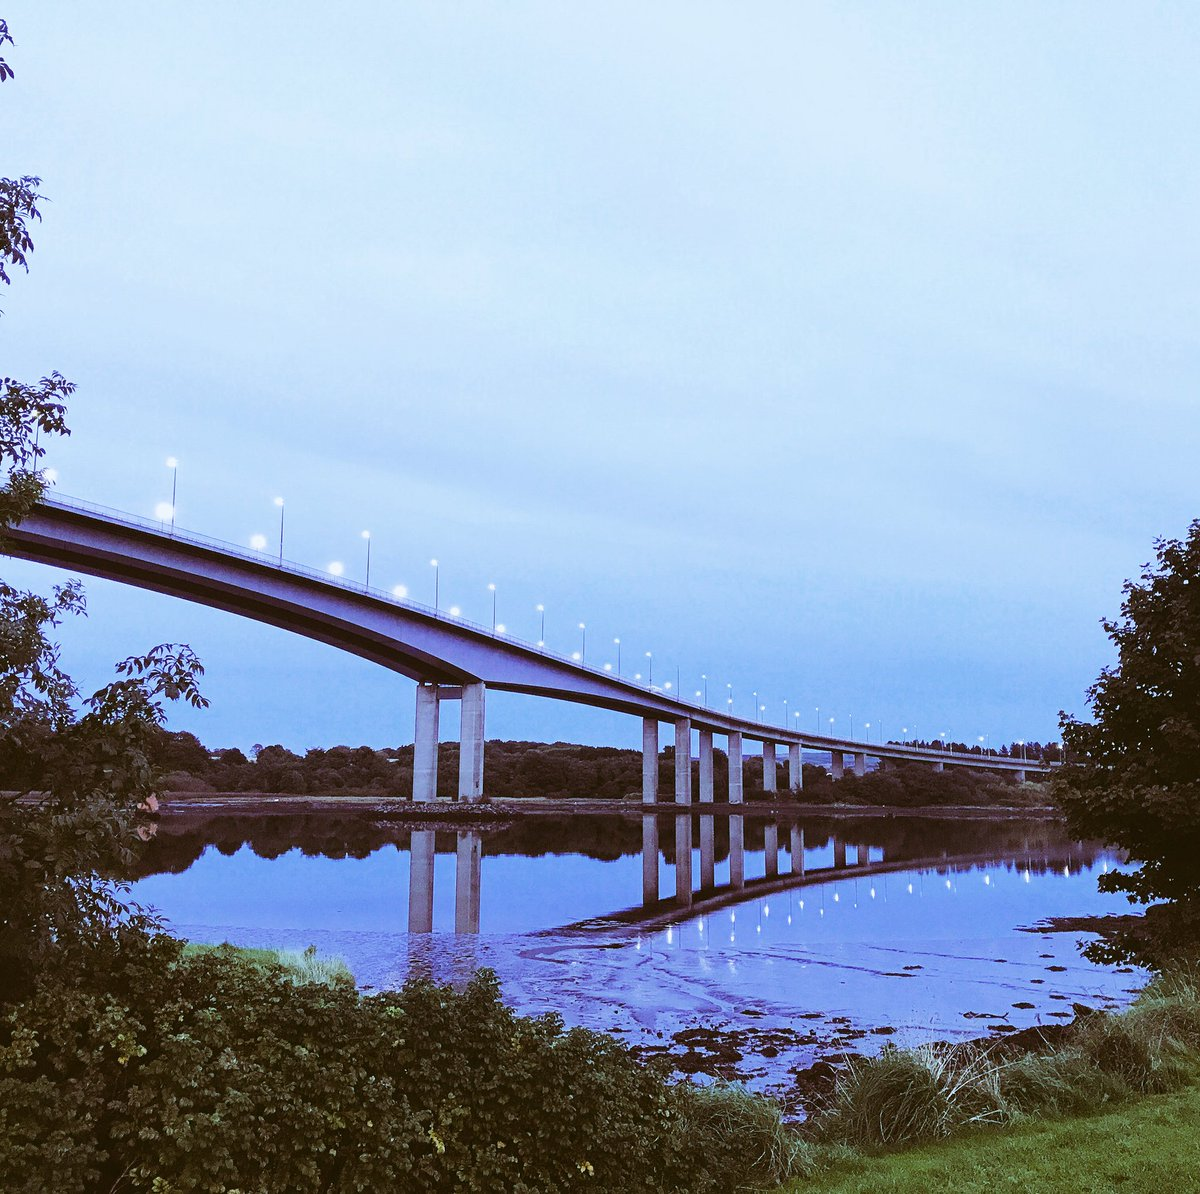 Lovely stroll around the Foyle Bridge this evening #Derry #Mirrorwater #peaceful <br>http://pic.twitter.com/wS9i926uG6